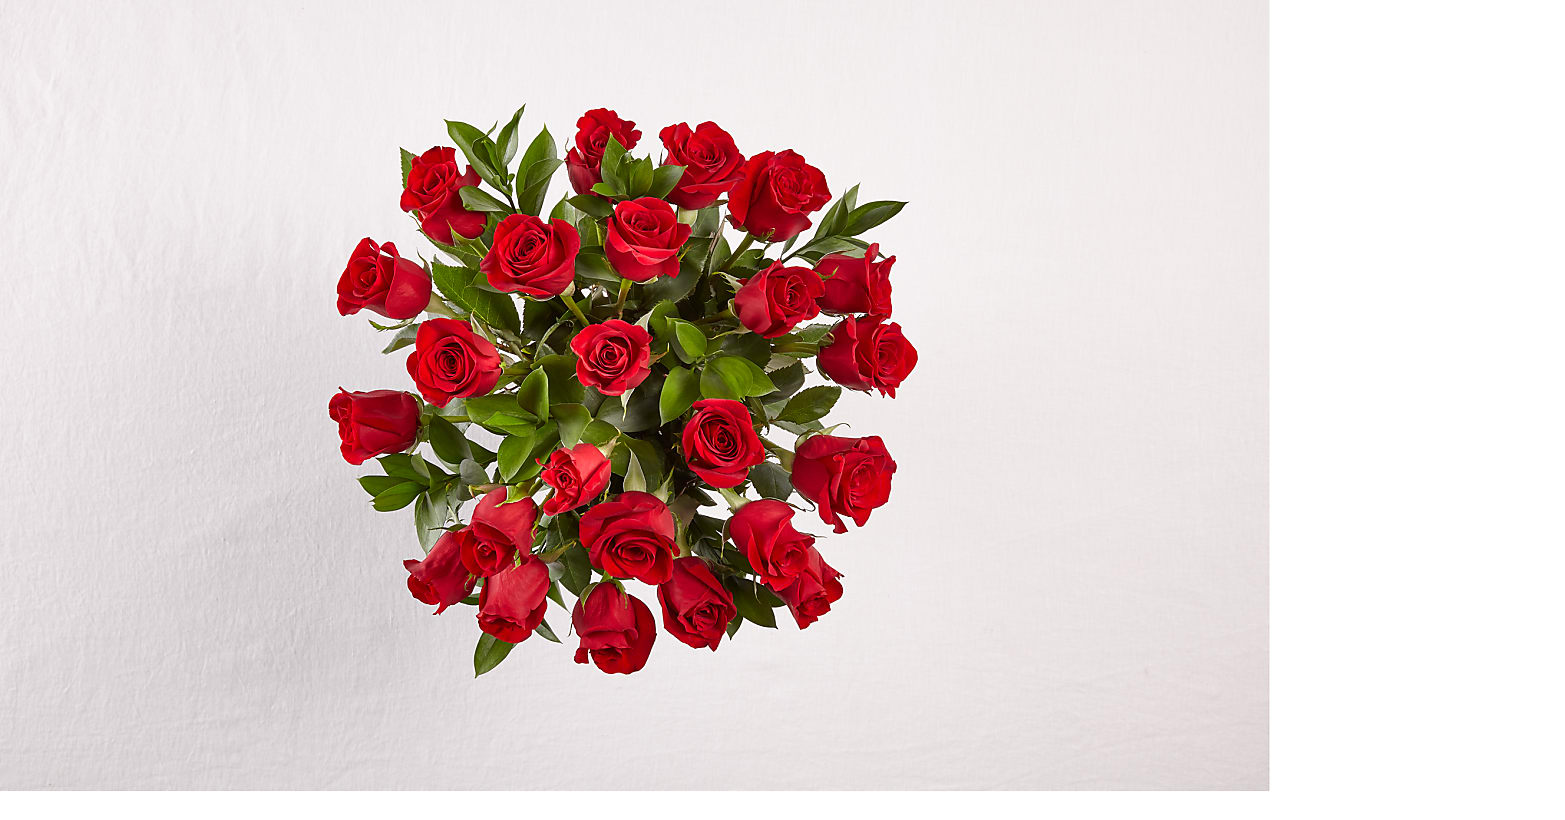 24 Red Roses no vase - Image 2 Of 4